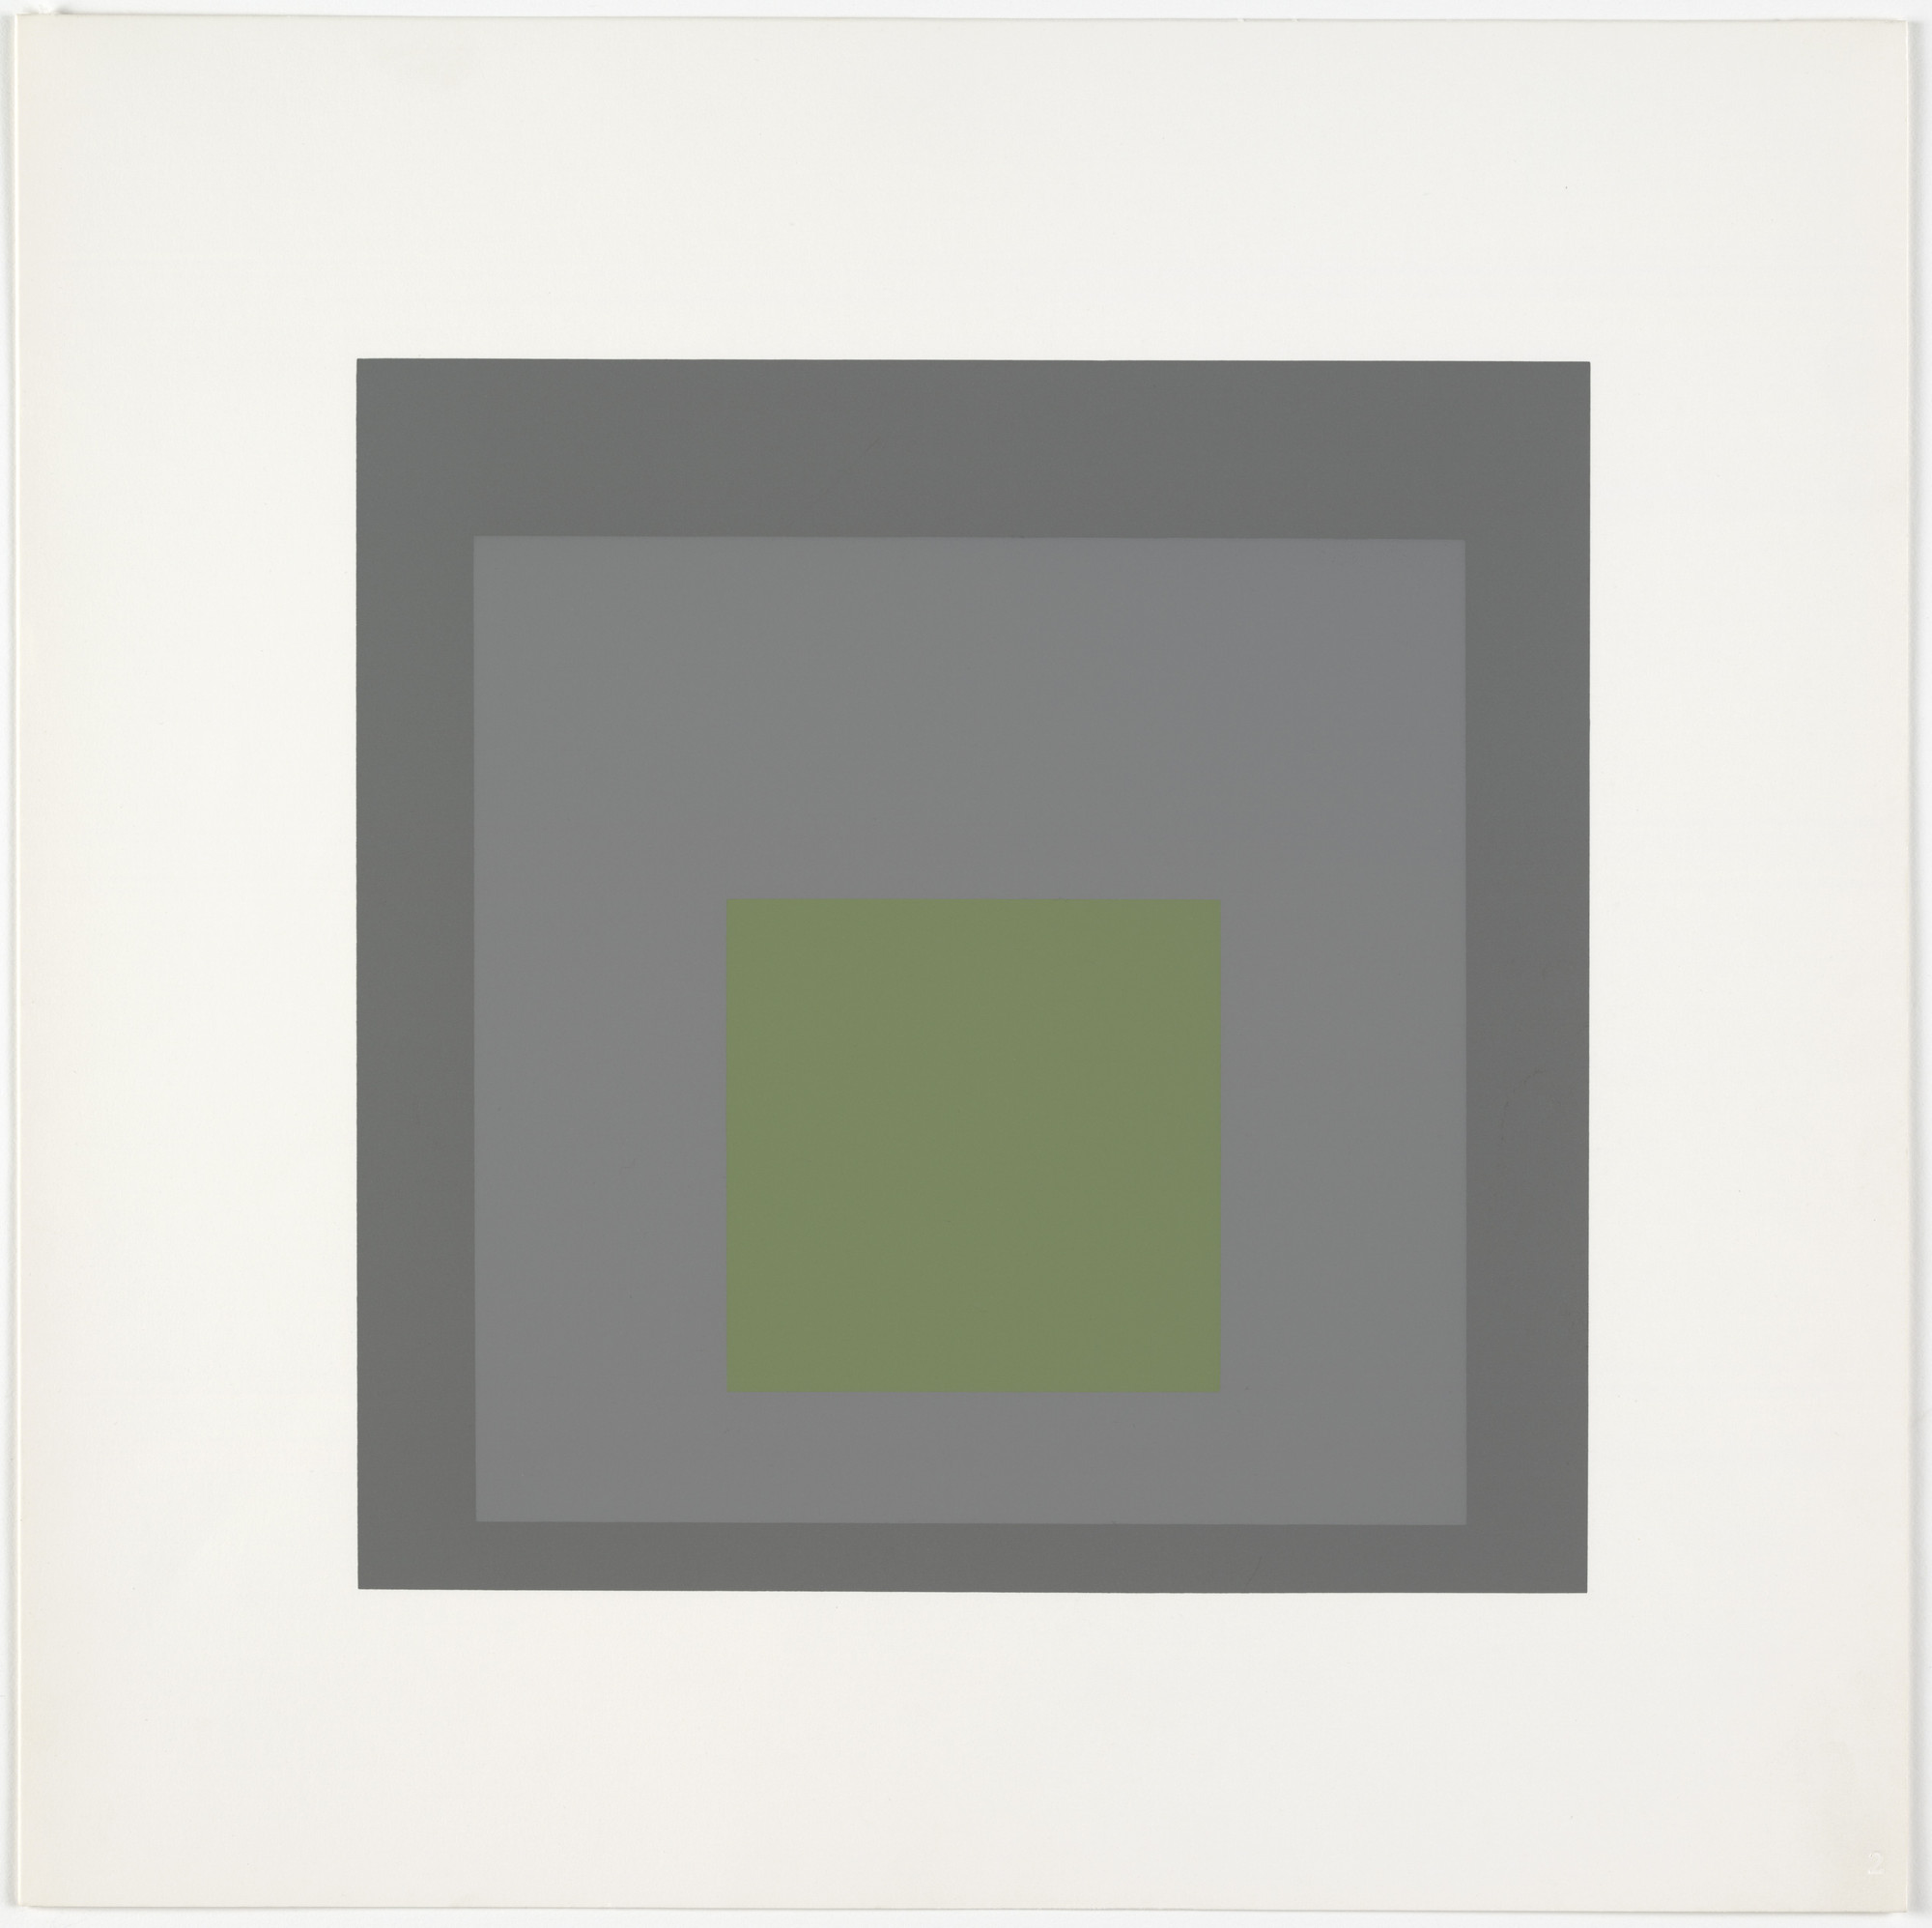 Josef Albers. Thaw from Homage to the Square: Ten Works by Josef Albers. 1962